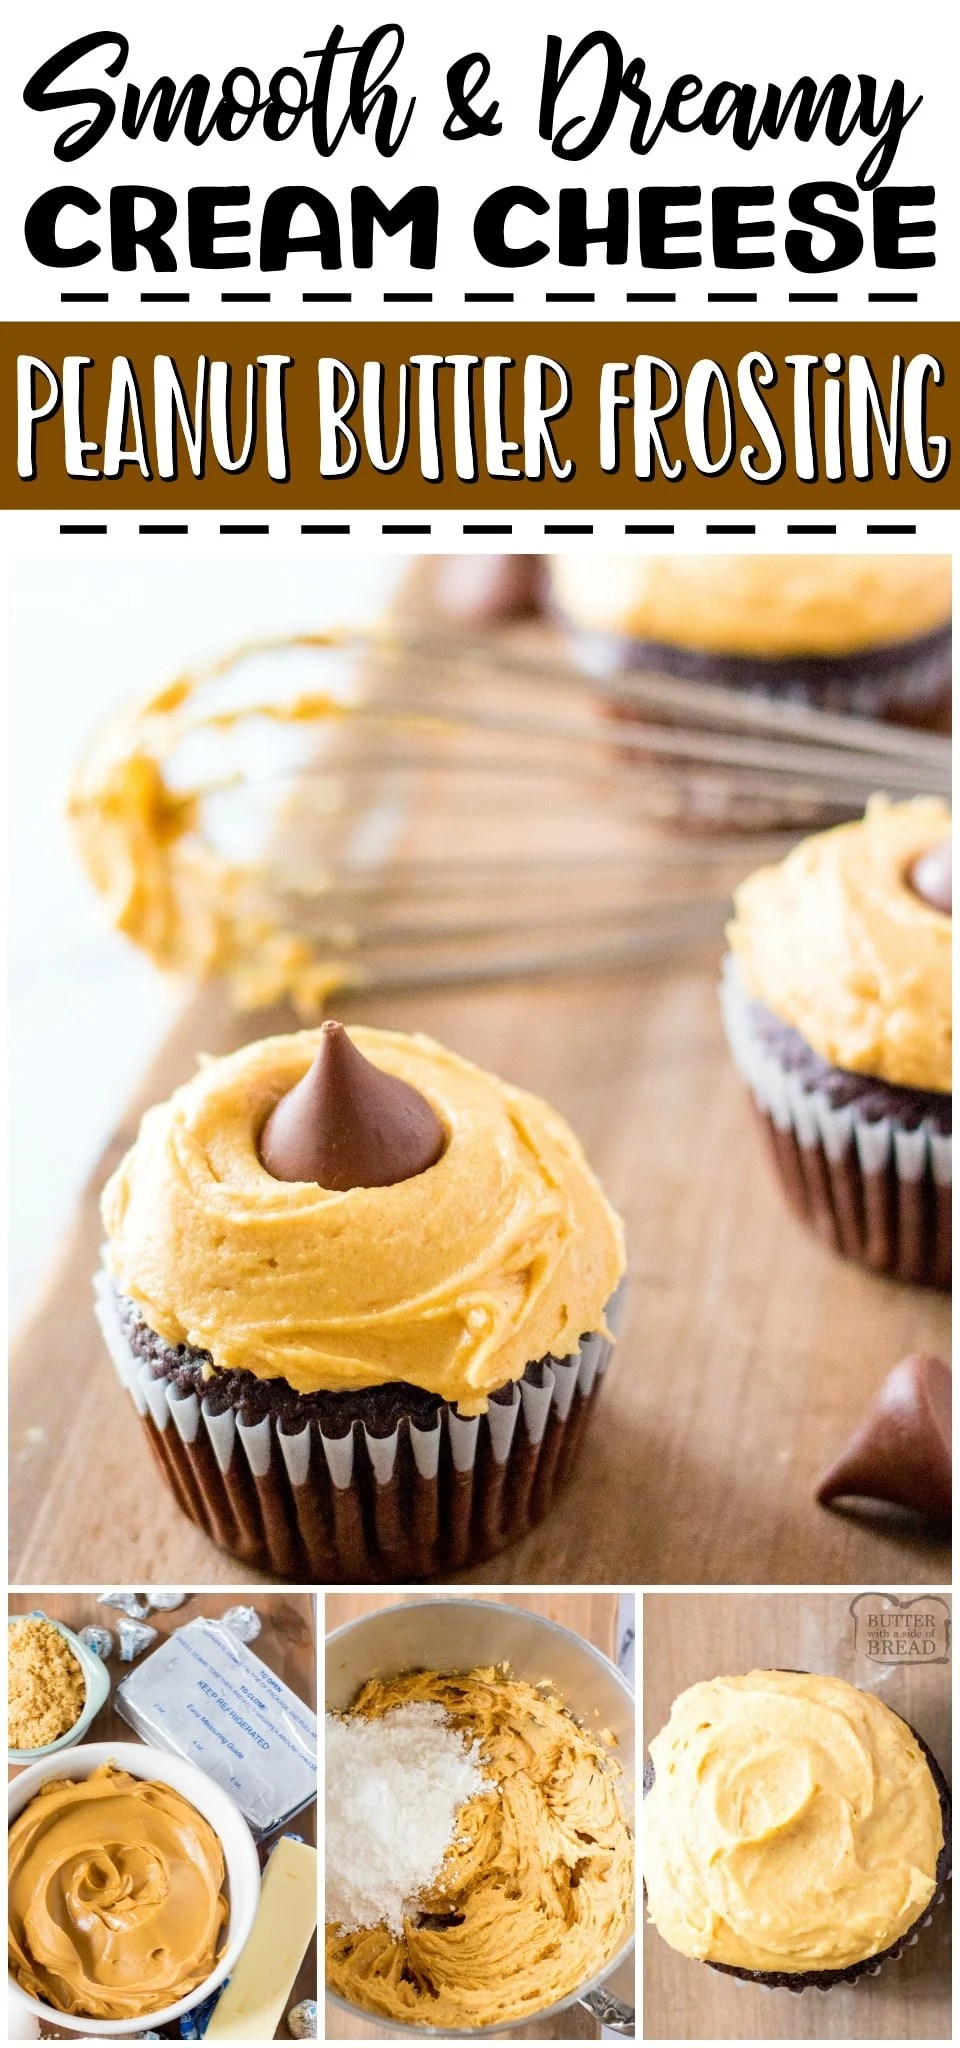 Peanut butter cream cheese frosting is a salty sweet, flavorful frosting recipe that you're going to love! Cream Cheese & peanut butter combine for a deliciously fluffy, smooth peanut butter frosting that is perfect on cupcakes, cakes, cookies & more!#peanutbutter #frosting #creamcheese #dessert #buttercream #easyrecipe from BUTTER WITH A SIDE OF BREAD